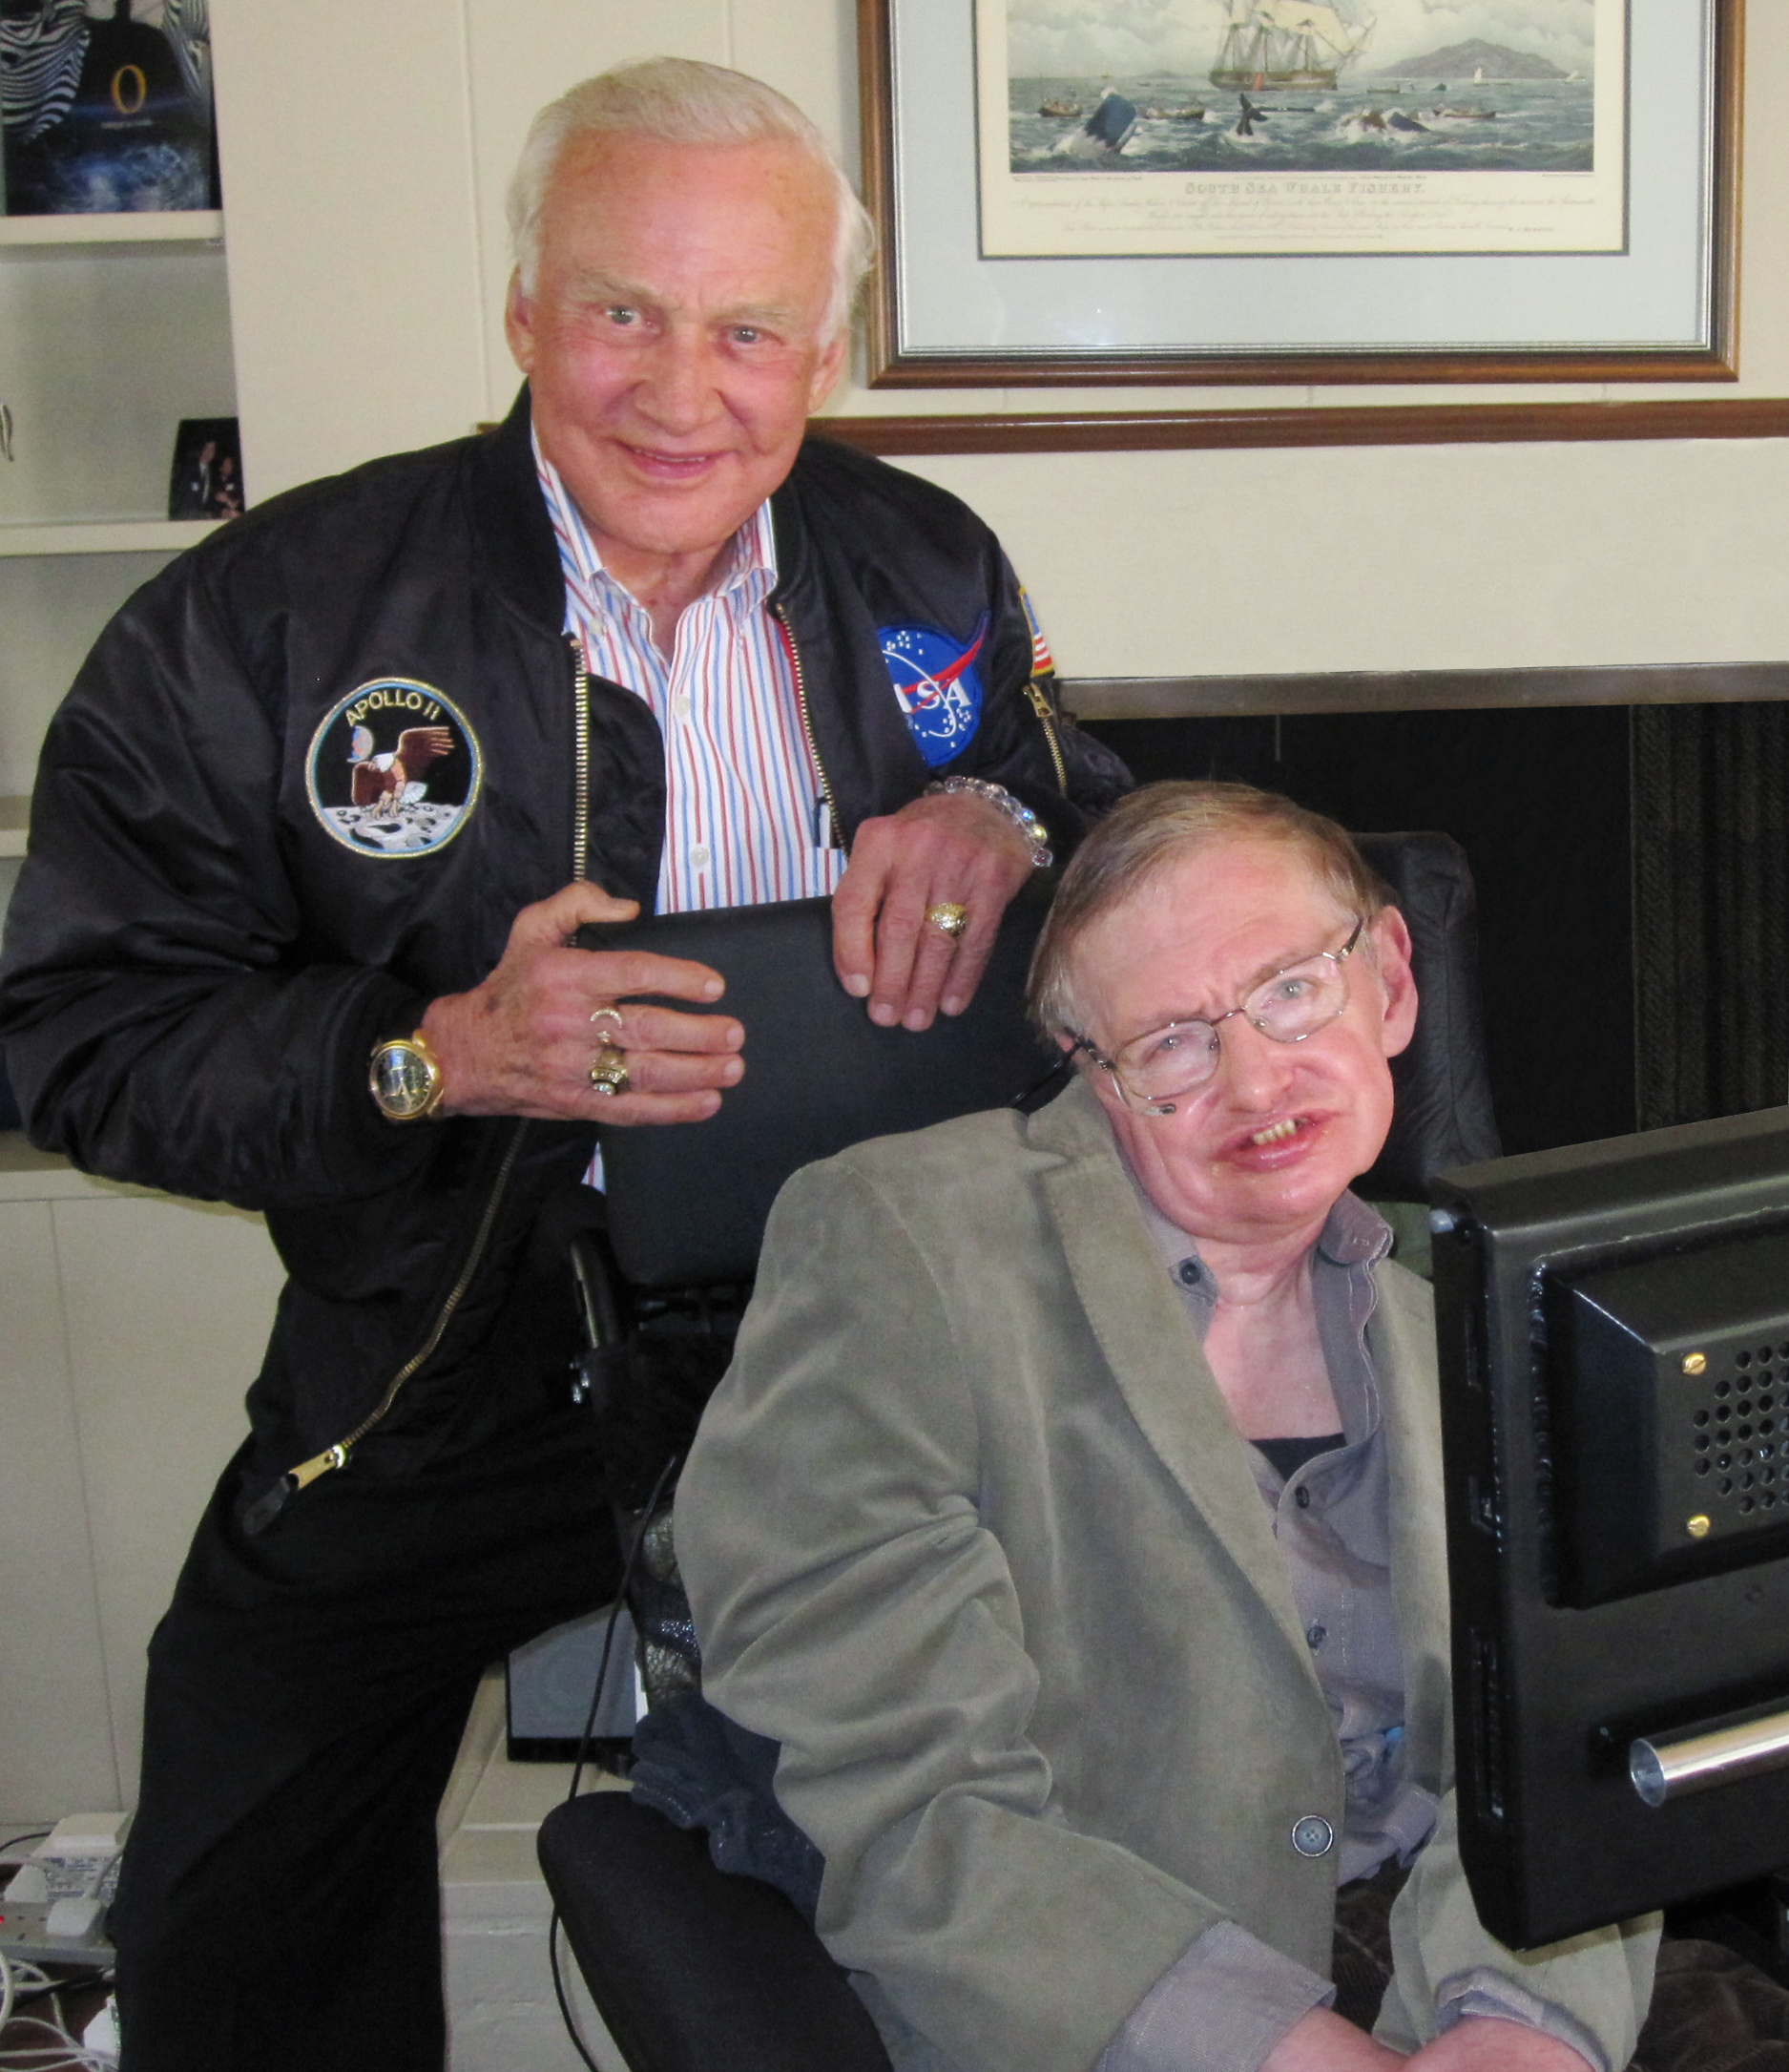 Stephen Hawking and Buzz Aldrin Join Forces for Space Exploration